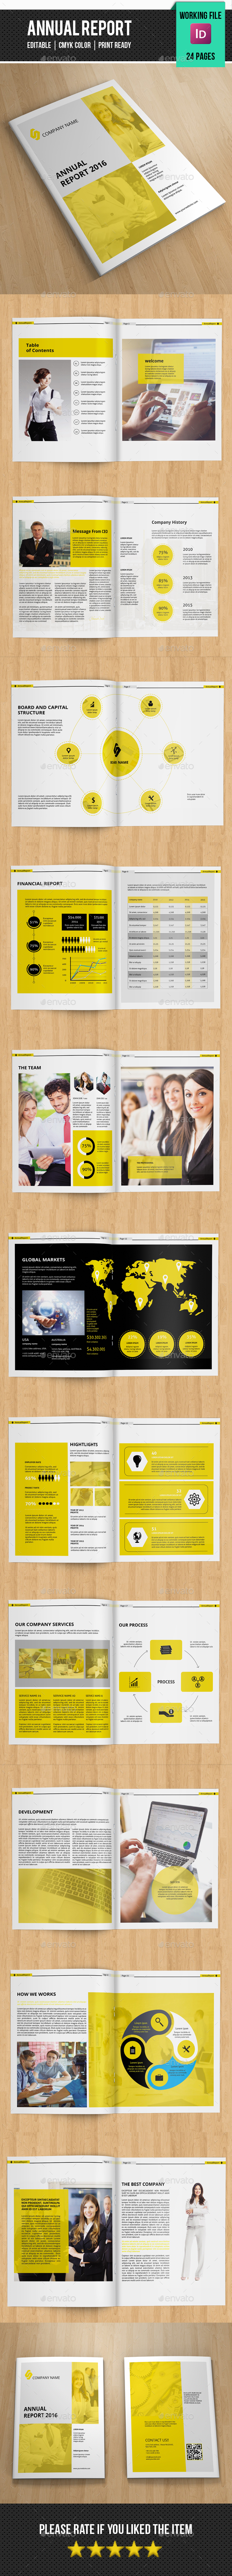 Annual Report-V339 - Corporate Brochures